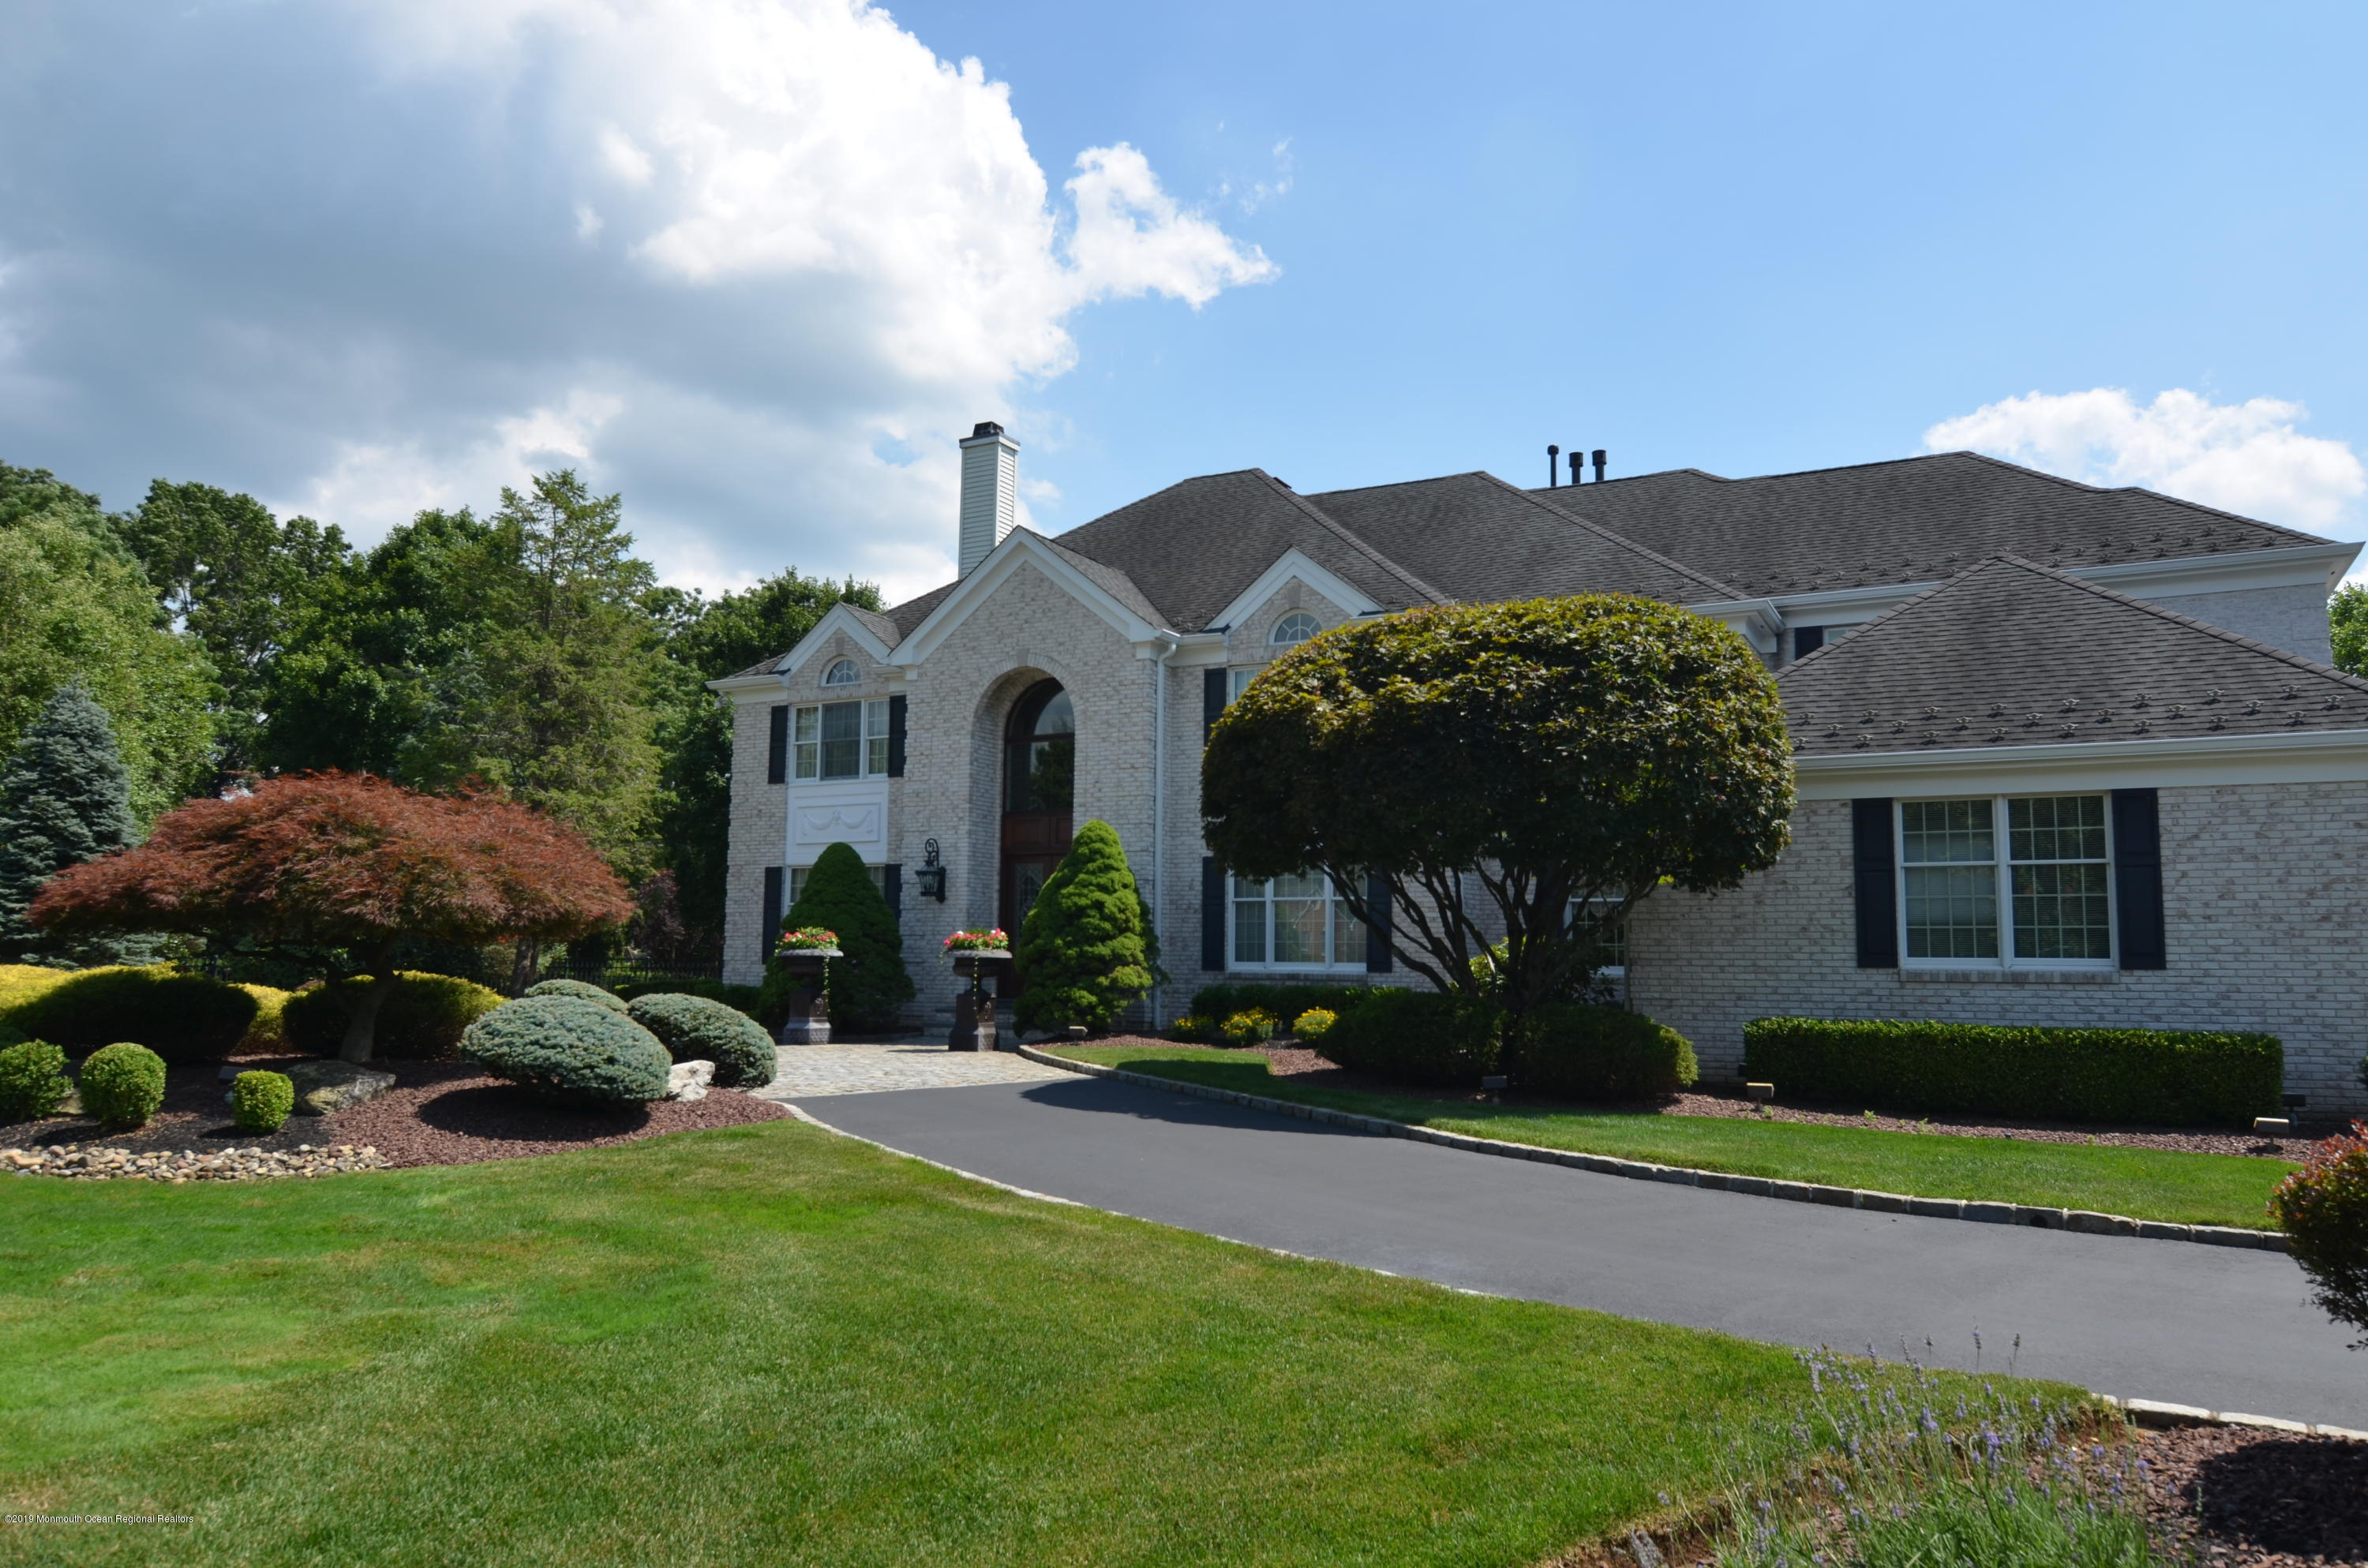 Photo of 14 Shadow Brook Drive, Colts Neck, NJ 07722